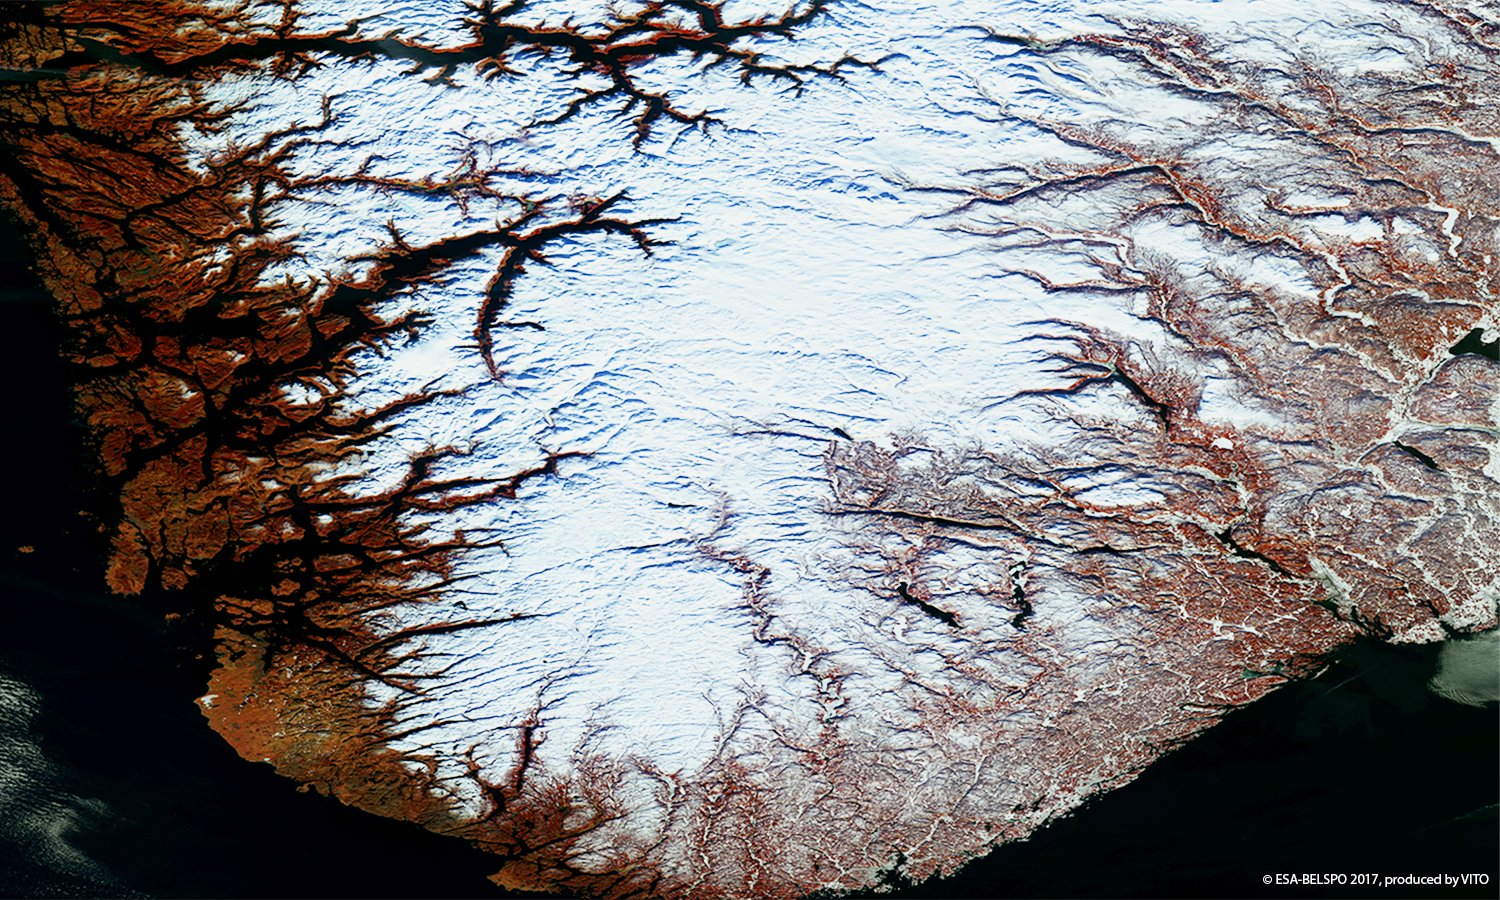 Today's Image of the Day looks like something out of a Tim Burton movie, but it's actually a photo of Norway's famous fjords.